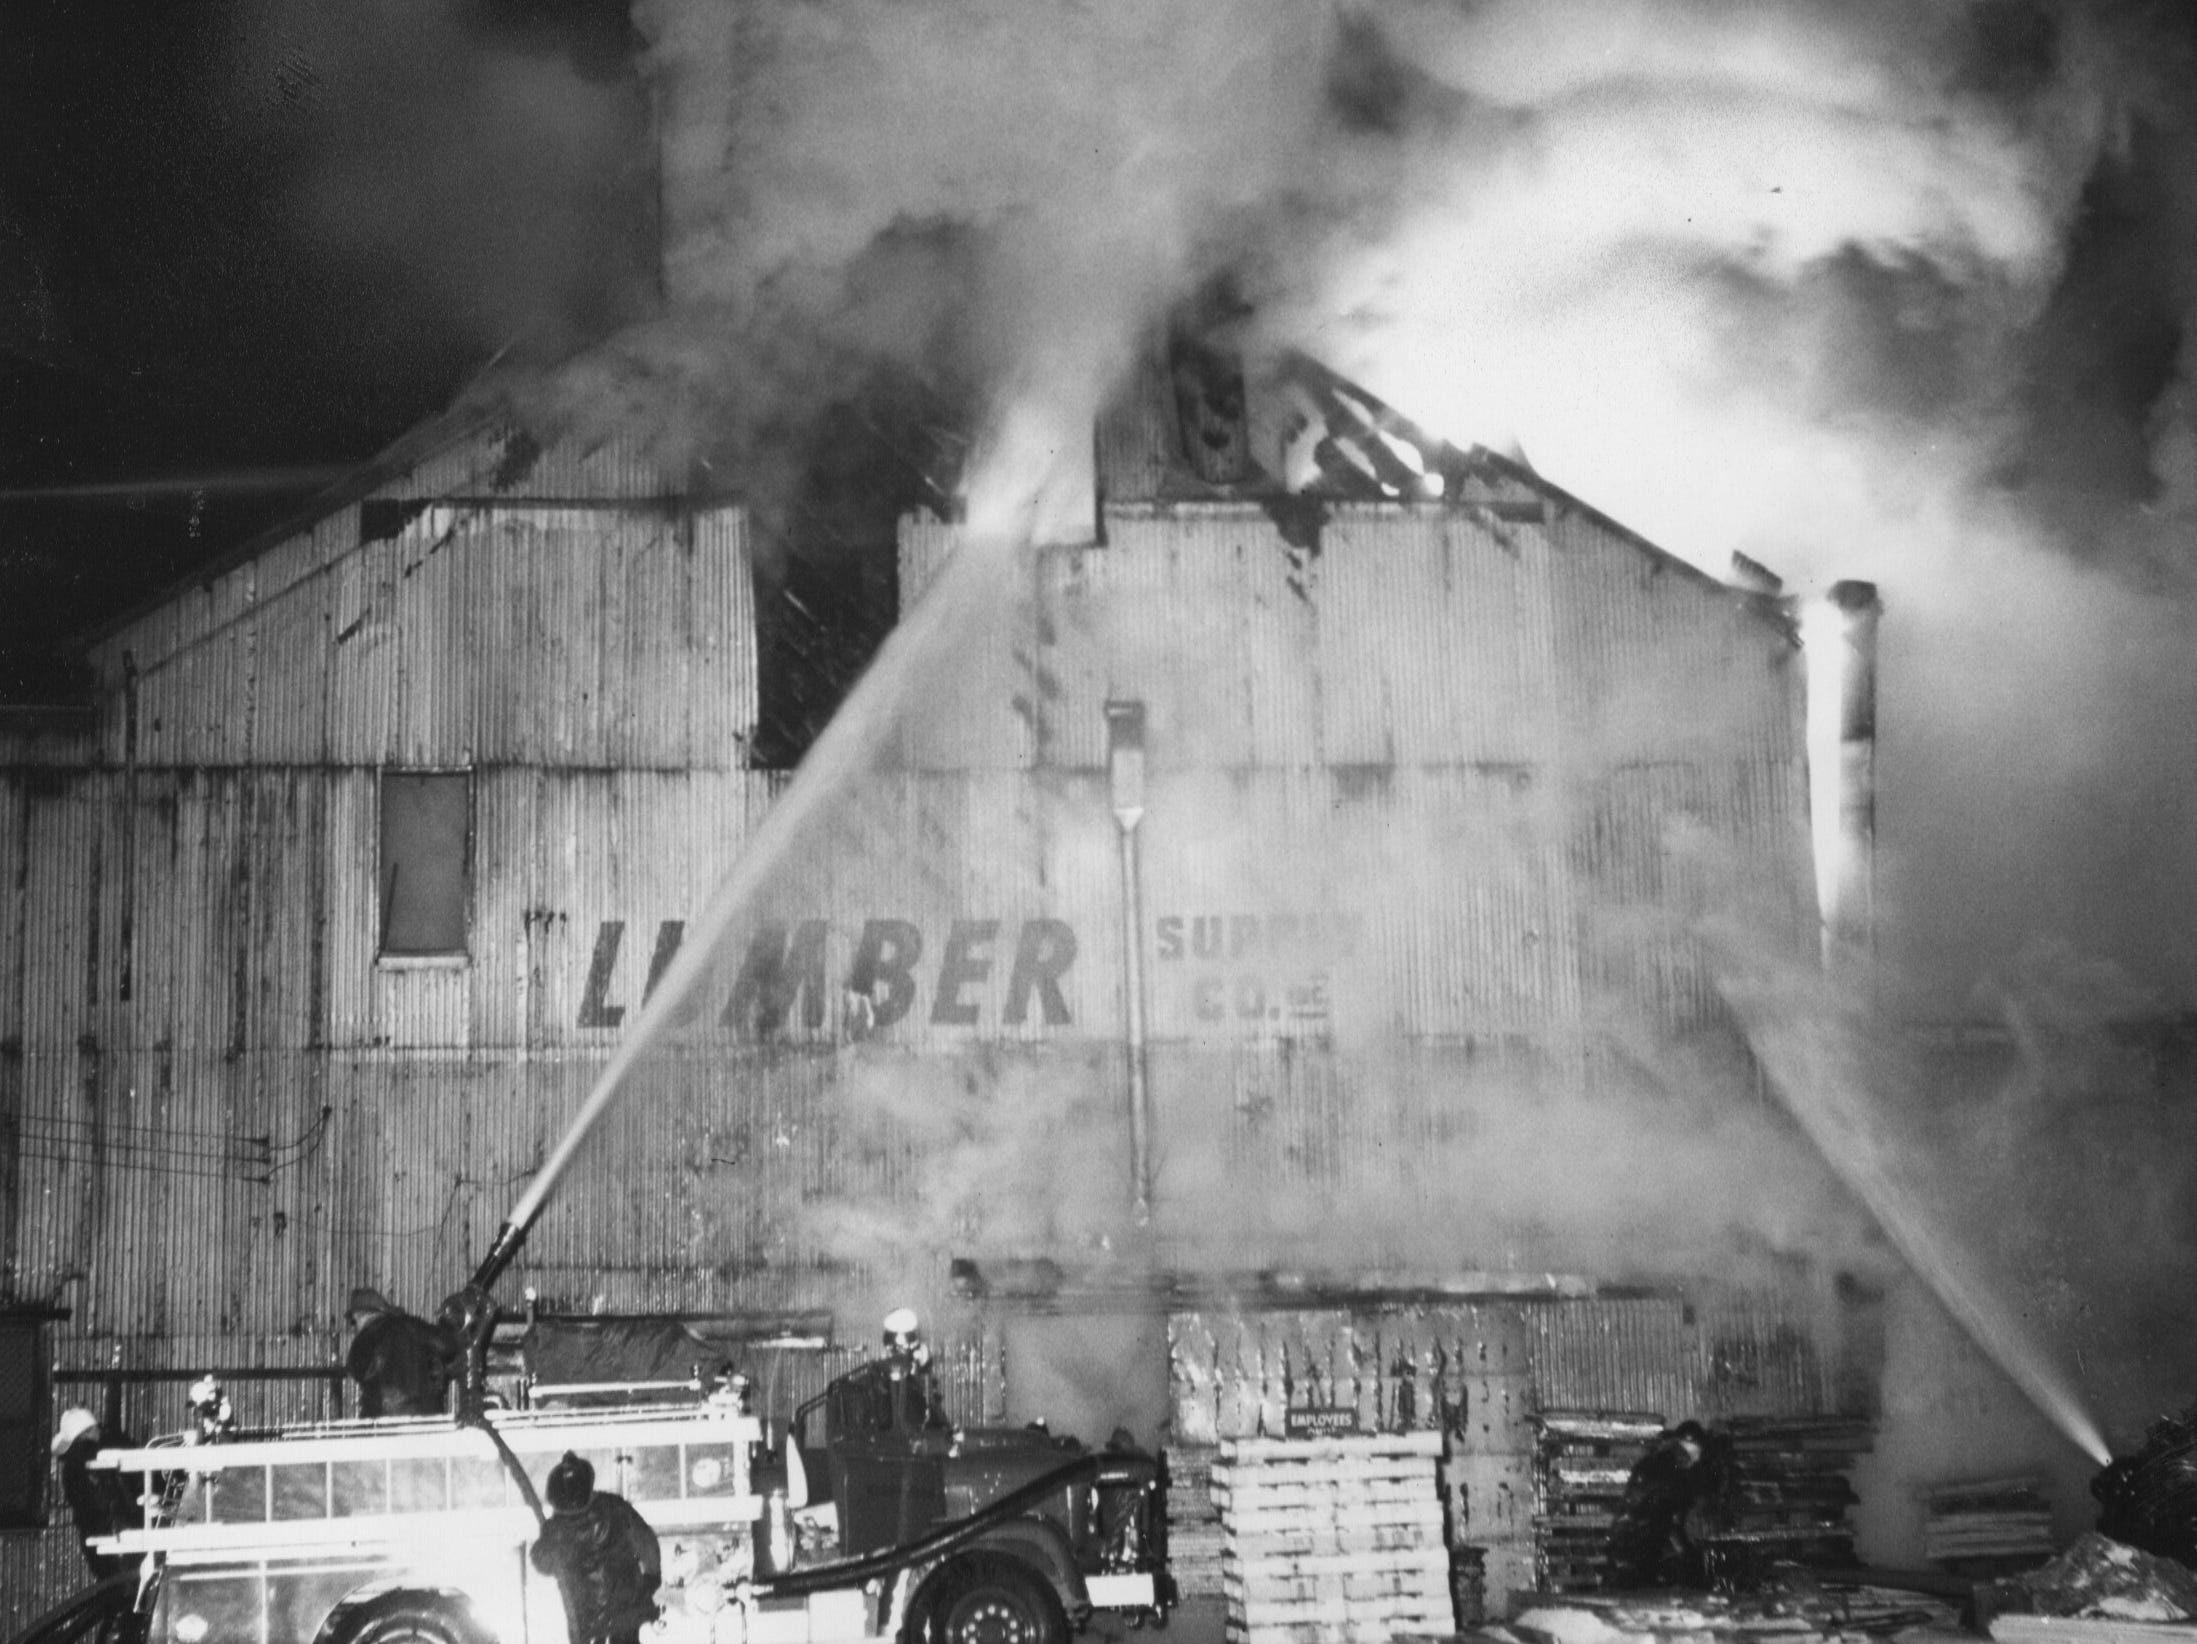 Hot duty on a cold night a firemen work in 20-degree temperatures and on ice-covered streets, battled a fire at the Lumber Supply Company.